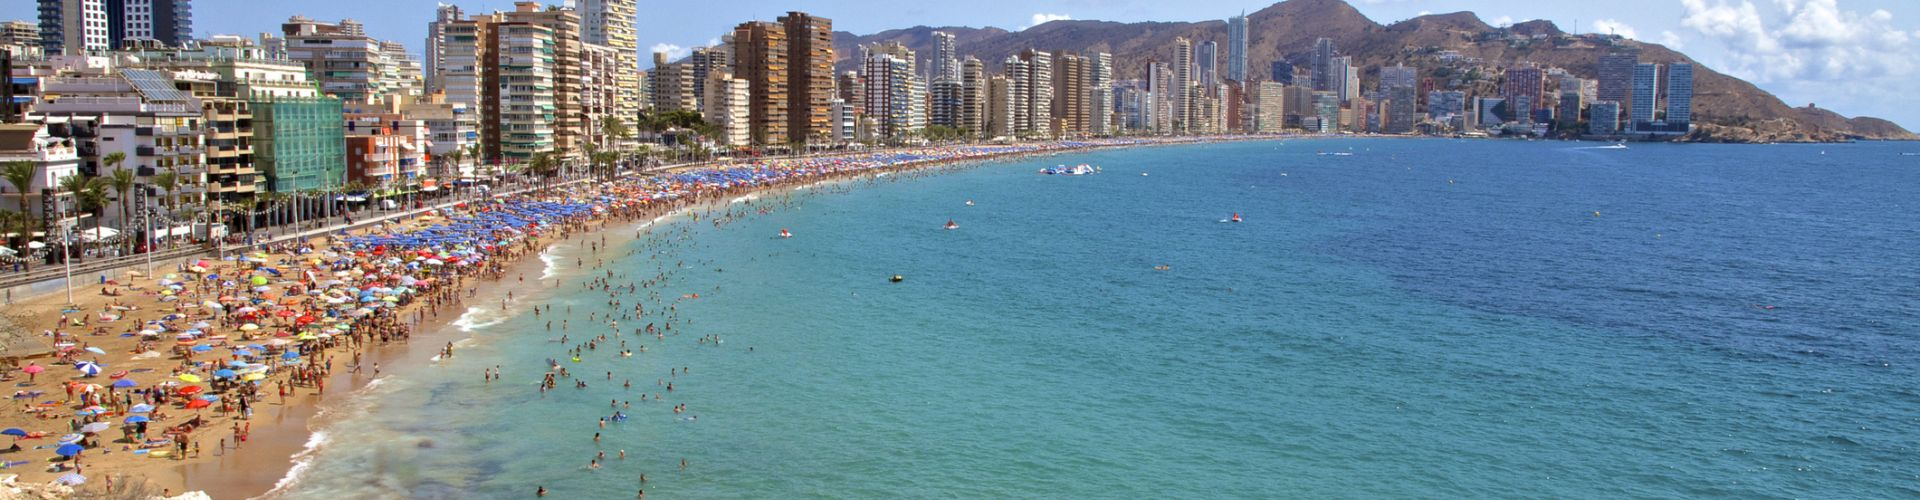 Benidorm Spain Levante Beach 492094218 2125x1417